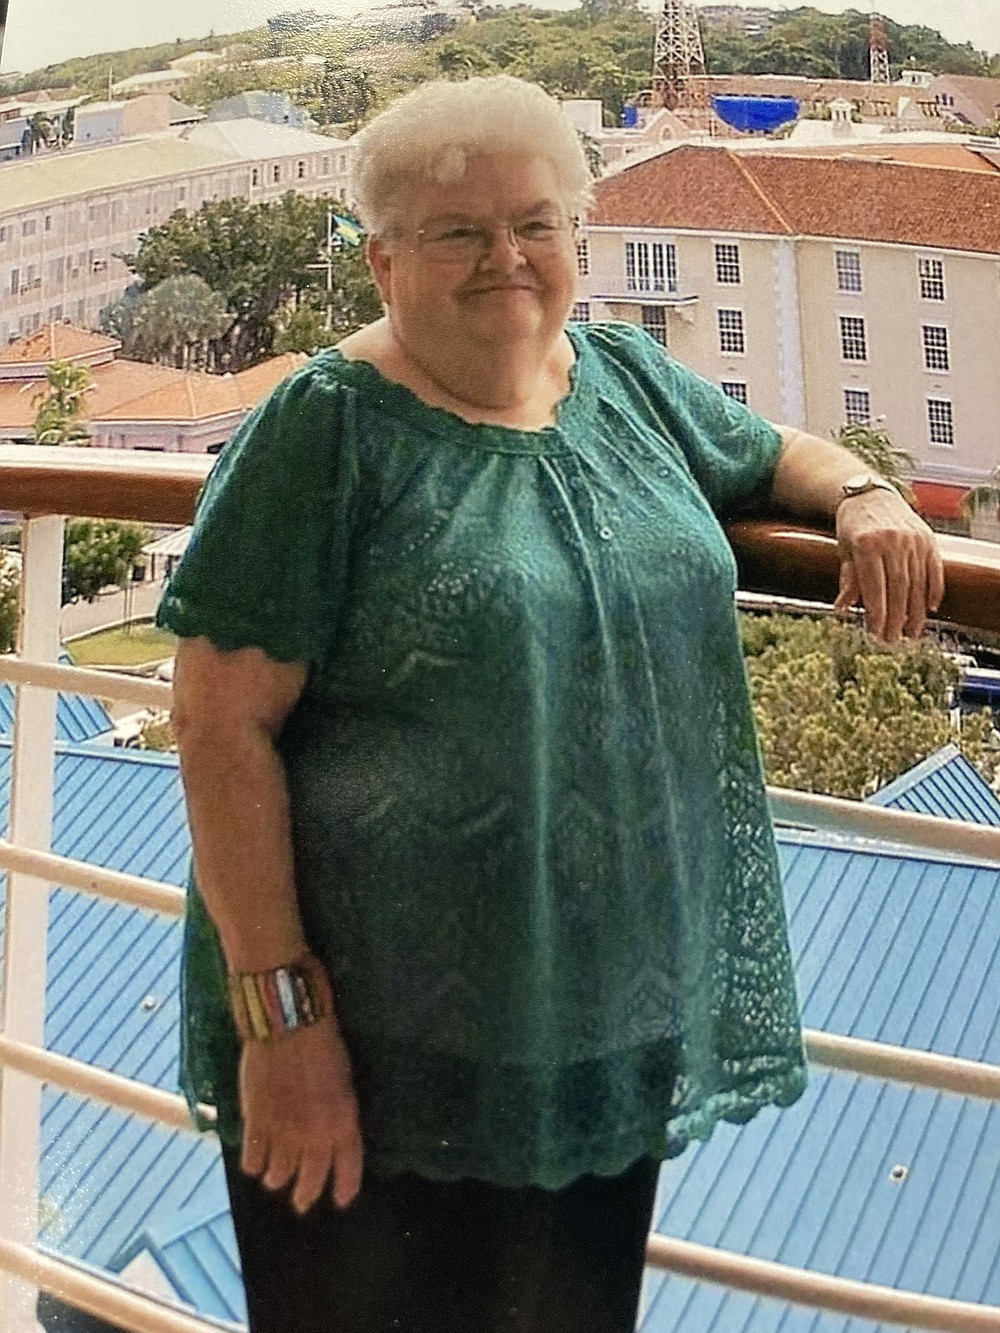 Debbie Staton's mother, Charlotte Munson, shown here in a 2013 photograph, died of covid in December. (Special to the Commercial)